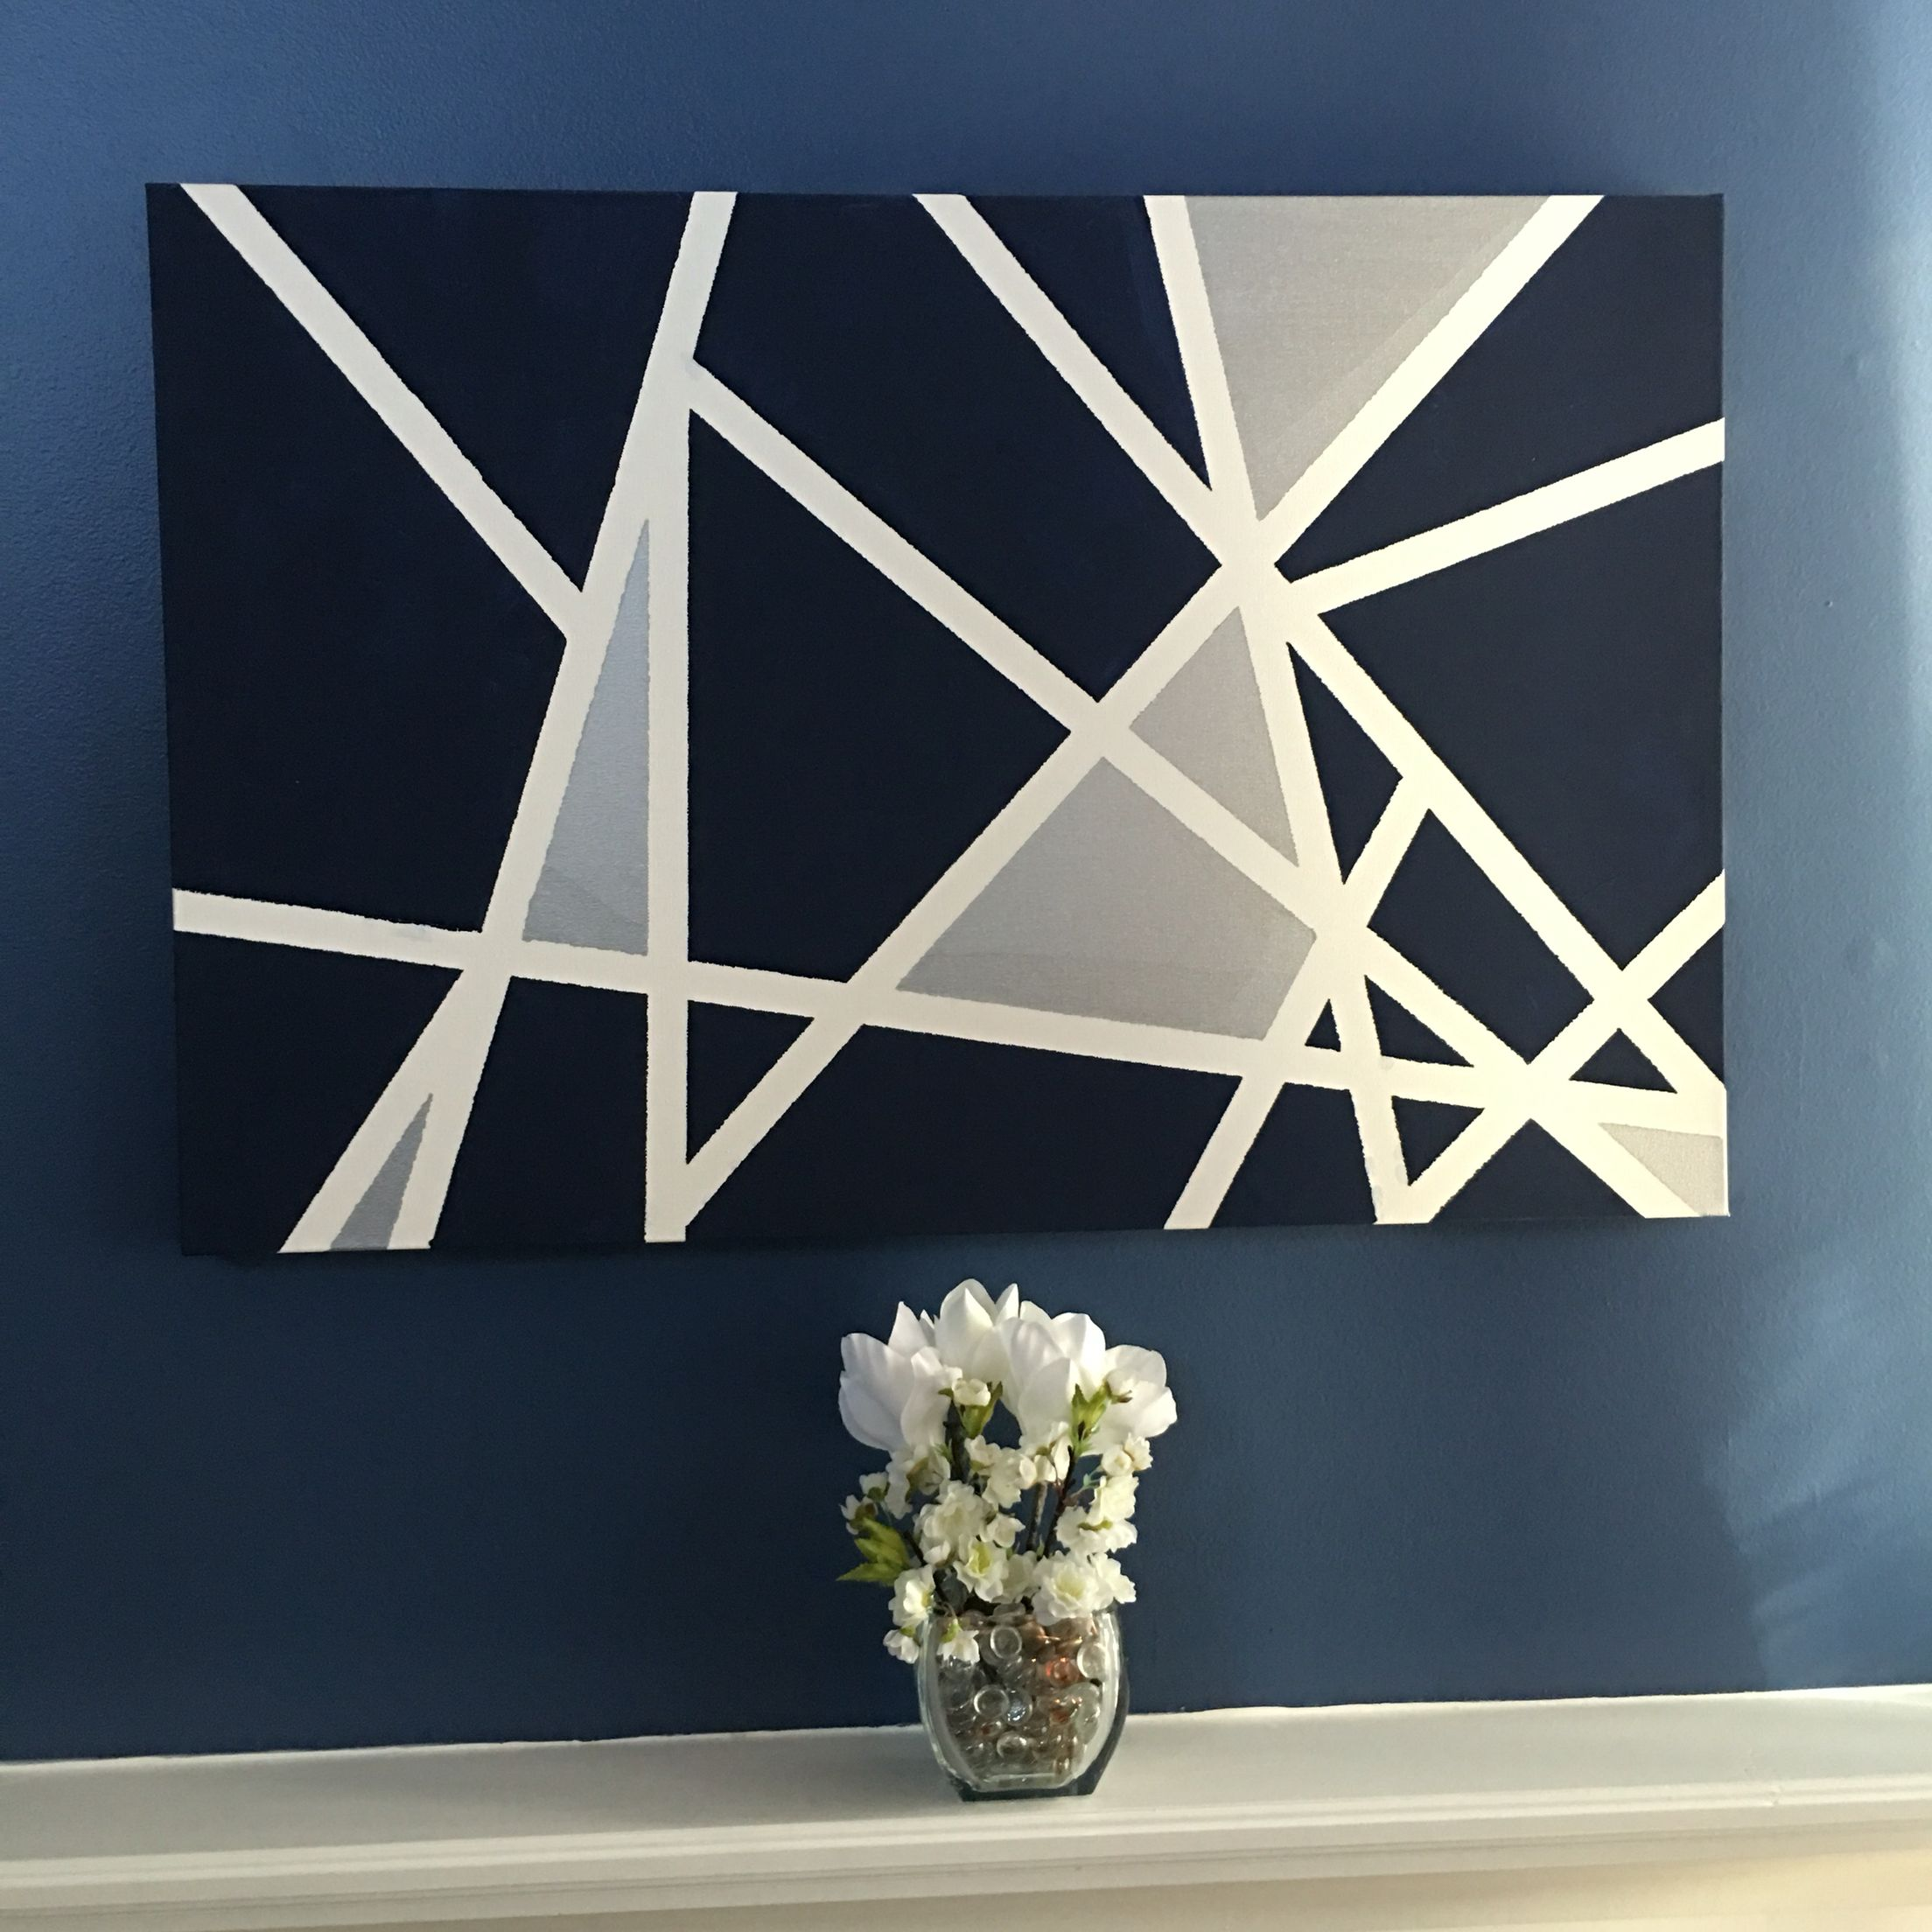 Diy Wall Art Canvas Tape : Diy canvas tape painting and a centerpiece made with